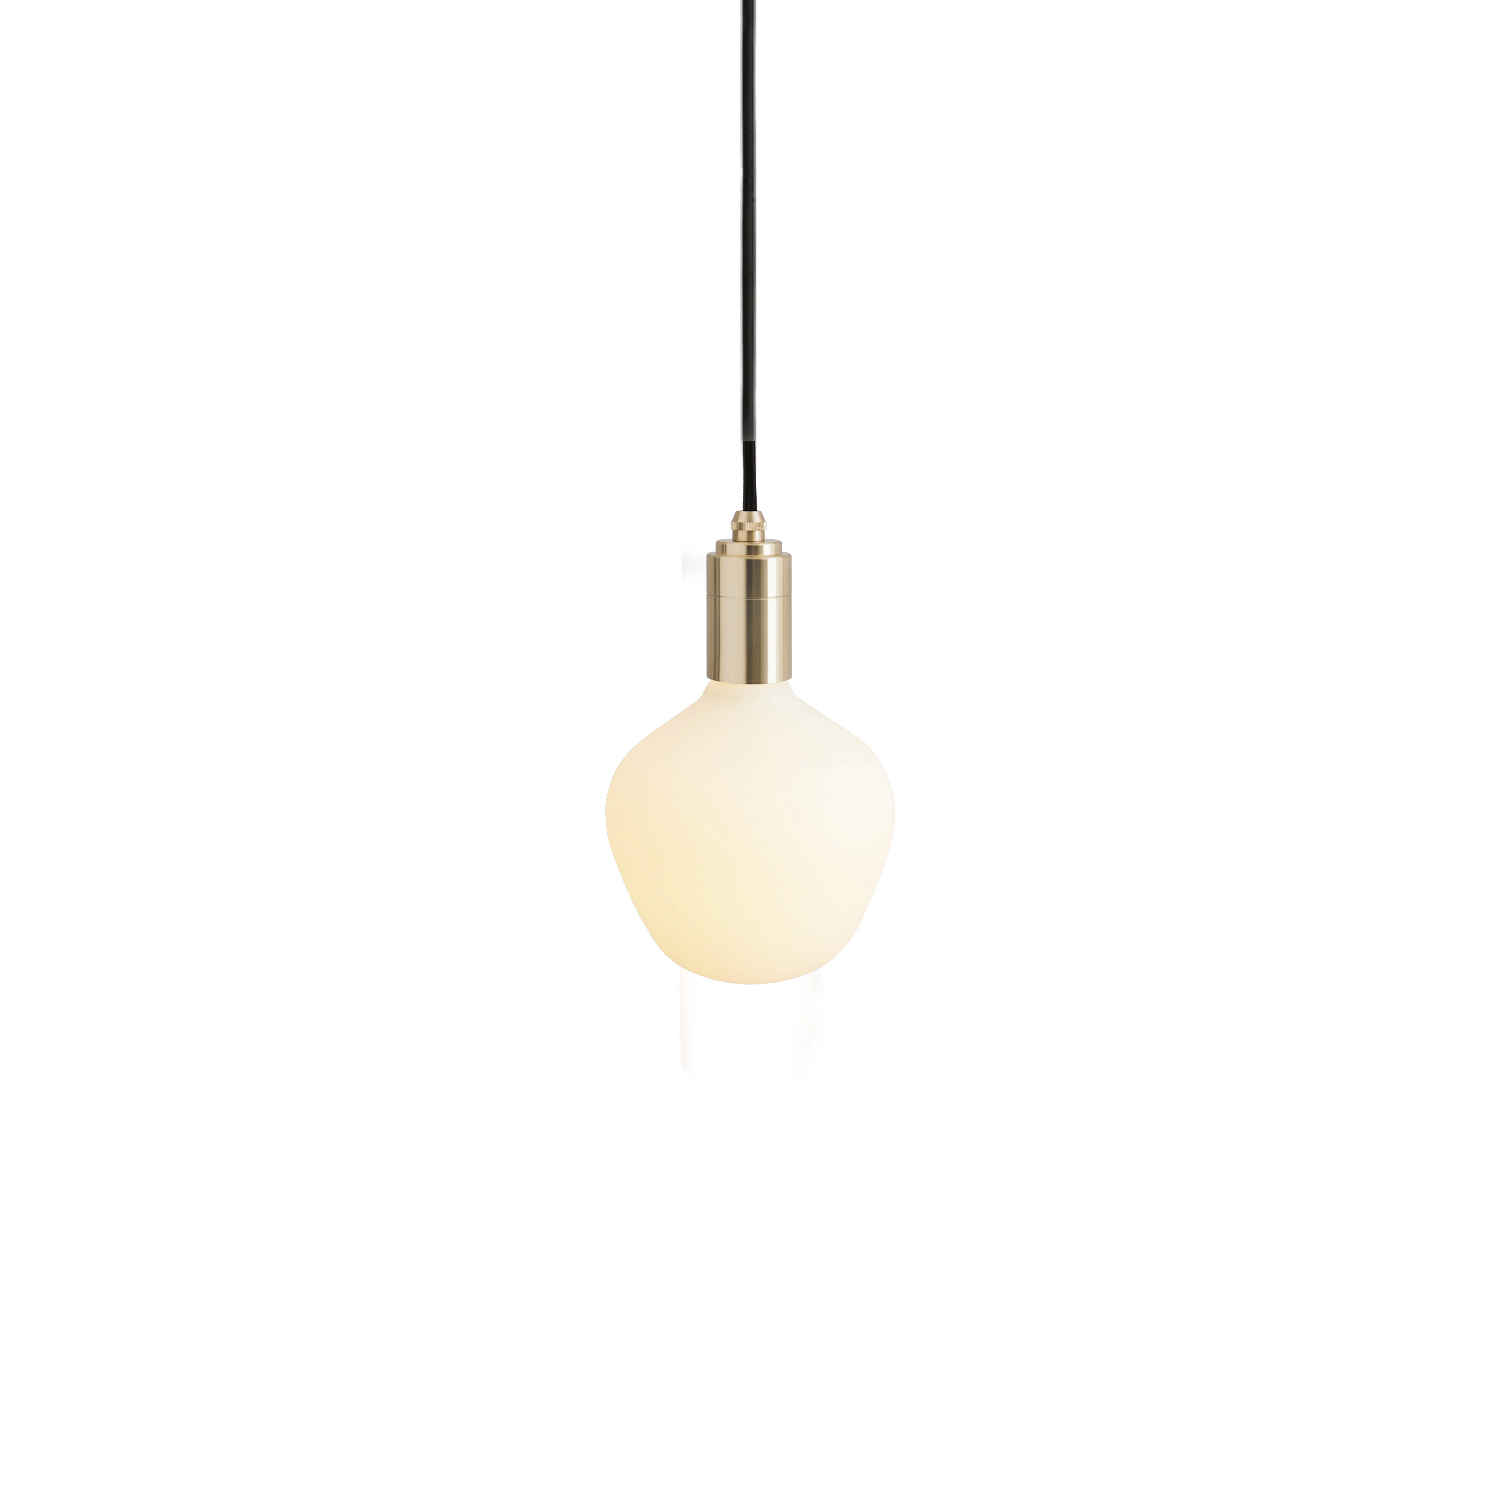 Enno Pendant Light - The Enno Pendant Light combines the strong, defined form of the Enno bulb with the minimal Tala pendant in Brass, Graphite, Oak or Walnut, creating a ready-made light fixture for any interior space.  With its characteristic trapezoid shape, the Enno bulb has a matte-white glass finish and high lumen output, making it suitable to illuminate both large and small spaces.  Available with the Brass, Graphite, Oak or Walnut pendant, this is a beautiful and decorative lighting fixture all in one.  Connect to one of our recommended dimmers for maximum performance.  Features – Dimmable – Strong geometric shape – Energy-efficient, LED technology – Matte white glass finish – Available with a Brass, Graphite, Oak or Walnut pendant – 3 metre length cord for versatility | Matter of Stuff